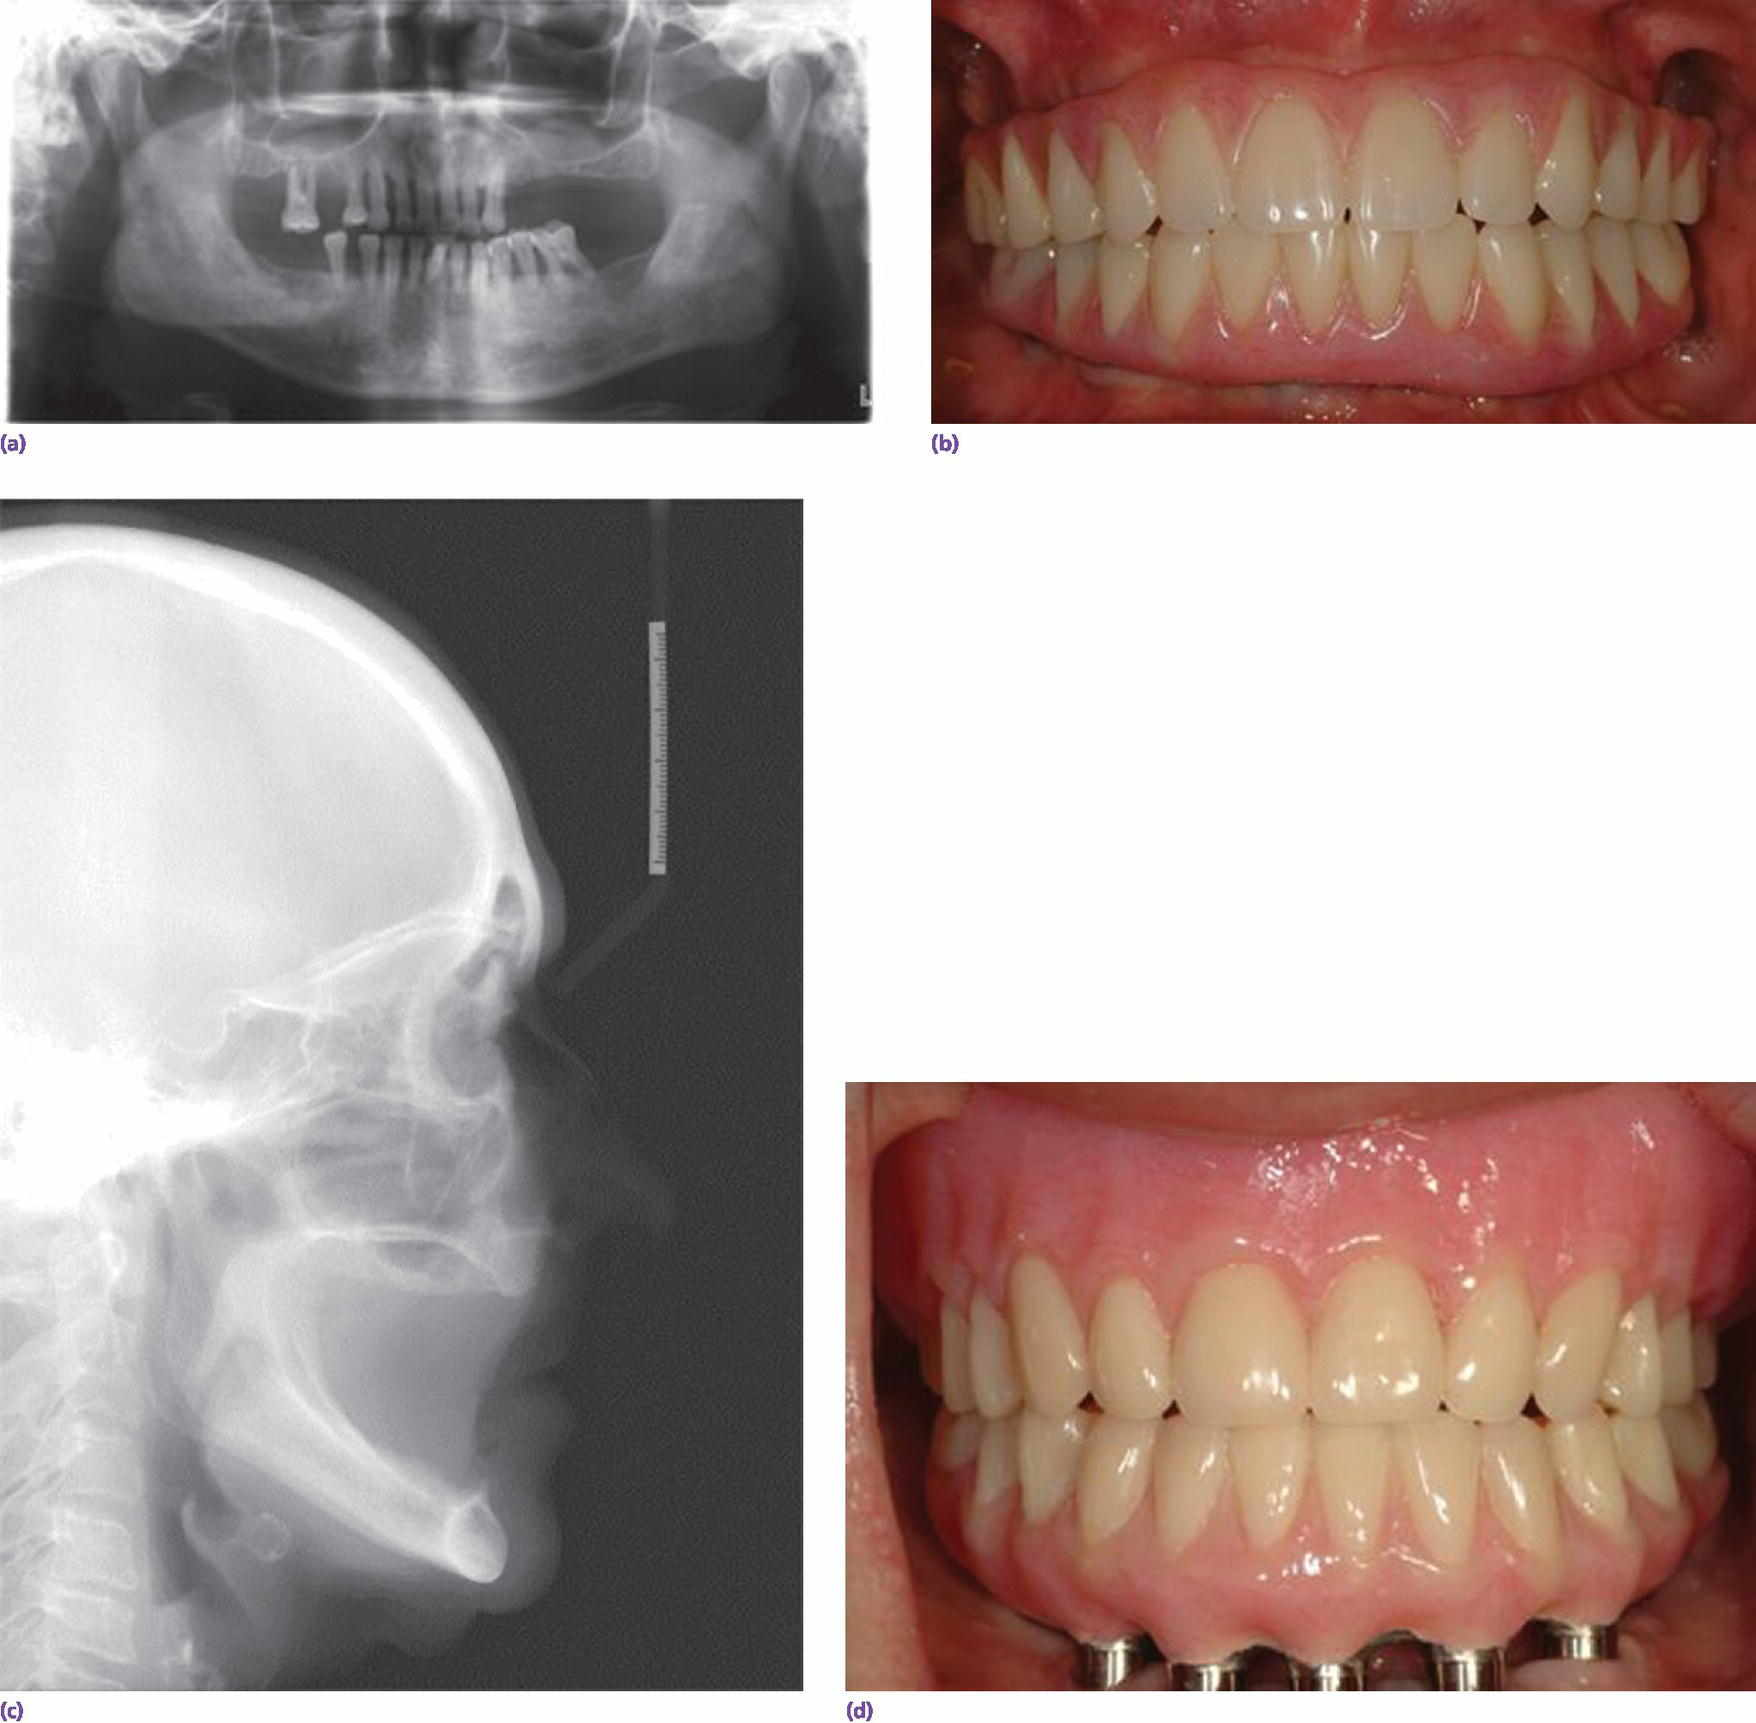 Radiographs of implant prosthetic reconstruction months (top left) and decades after tooth loss (bottom). Photos of implant fixed reconstruction (top right) and mandibular implant fixed reconstruction (bottom).